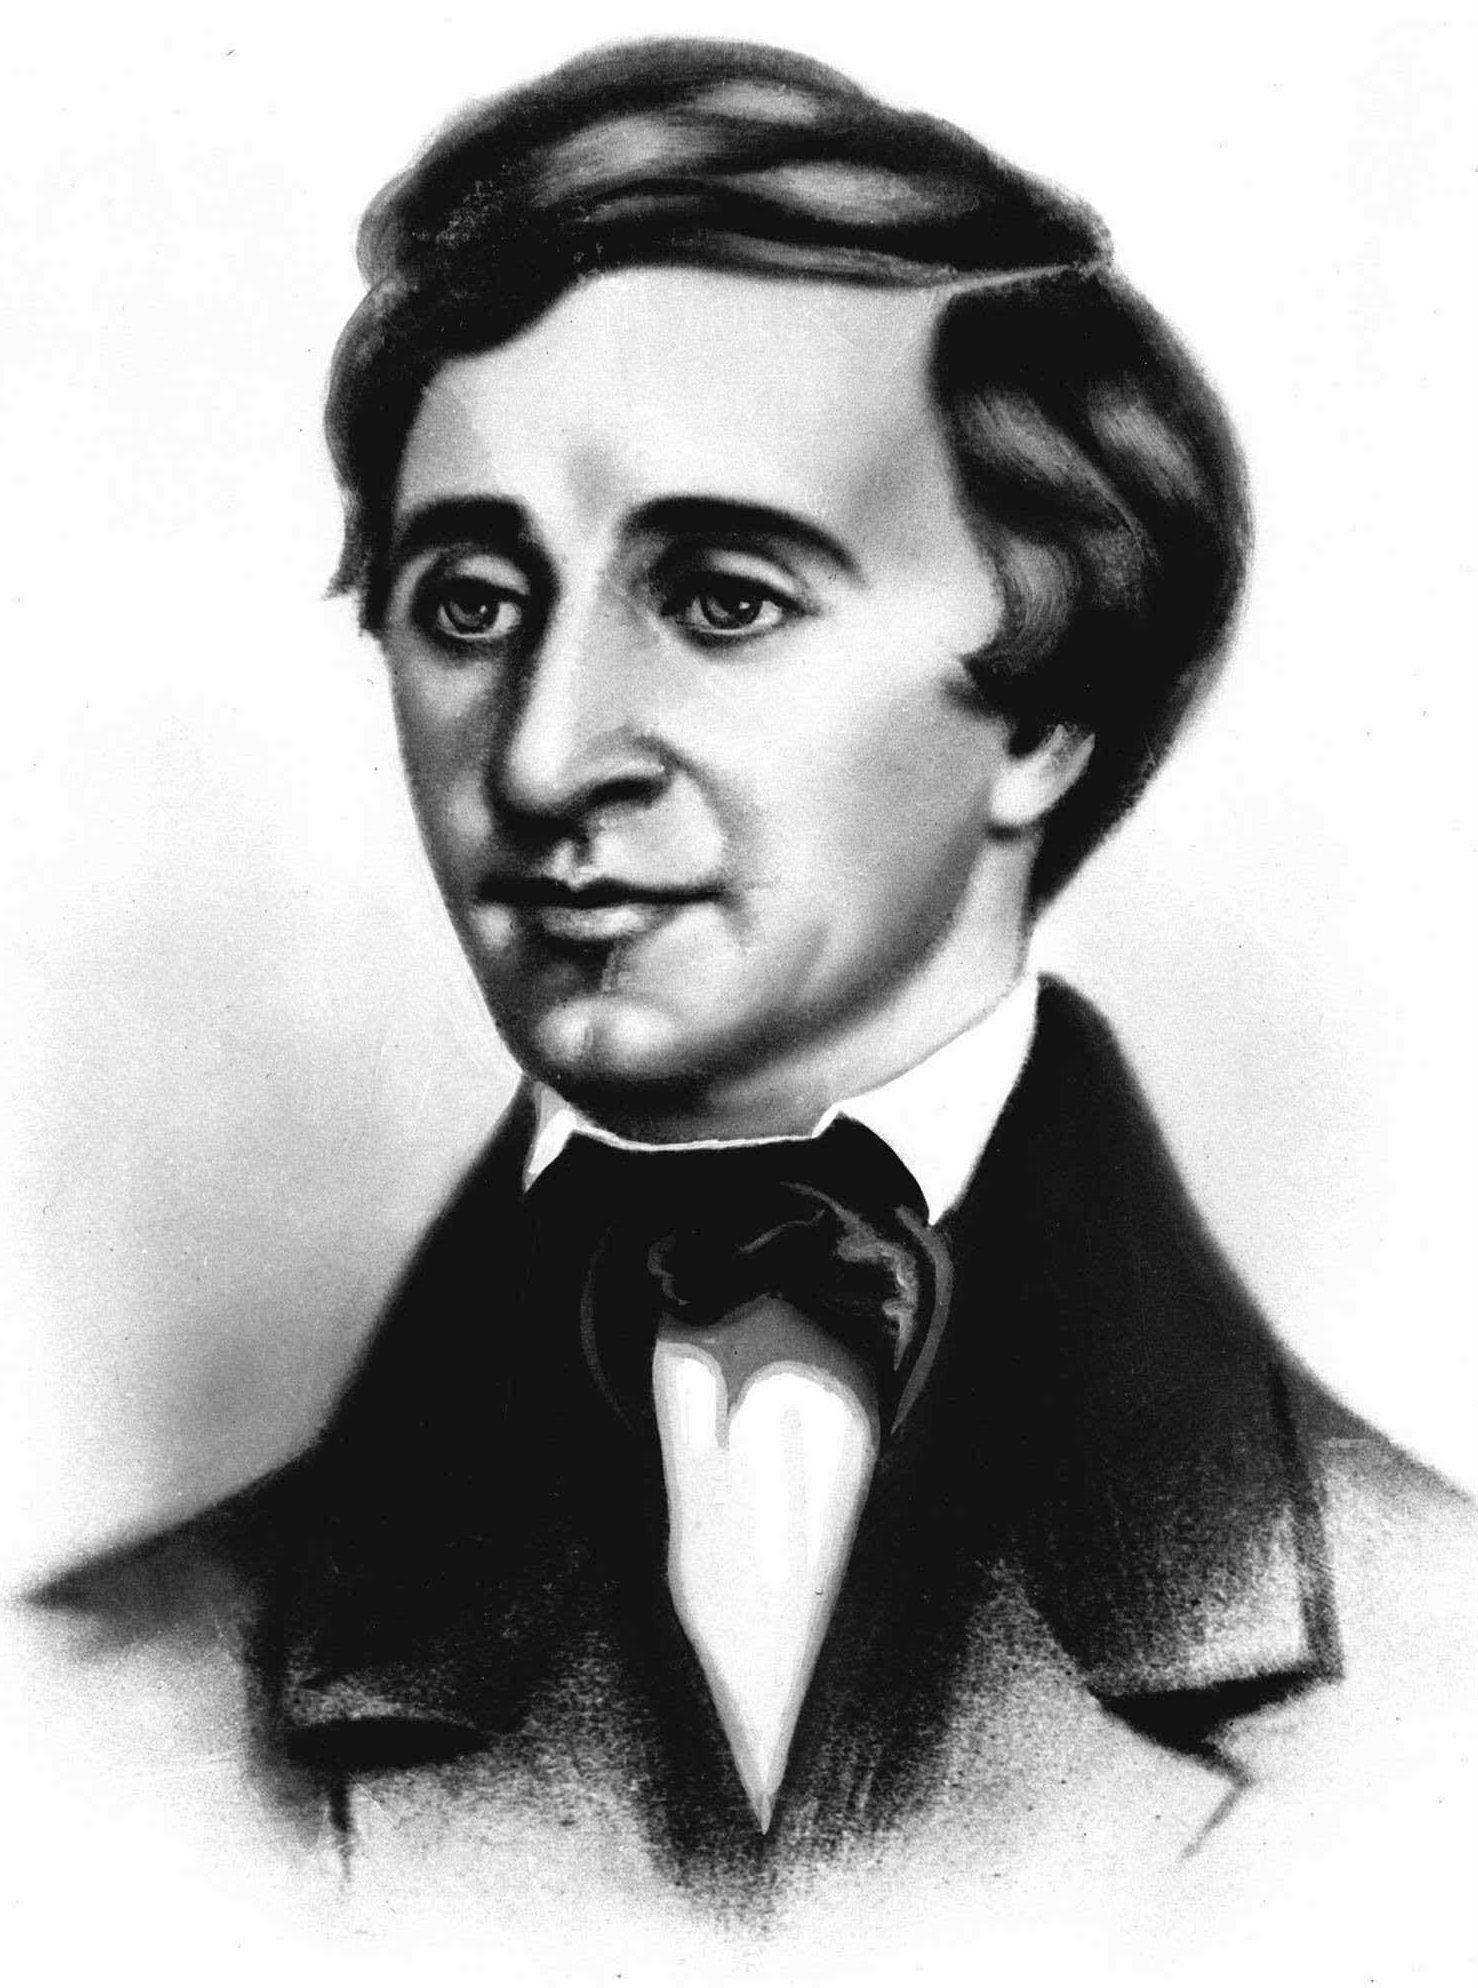 thoreau where i lived and what i lived for essay With a decision to avoid materialism, henry david thoreau lived off the land,  practicing free thought and self-reliance while valuing the importance of nature.